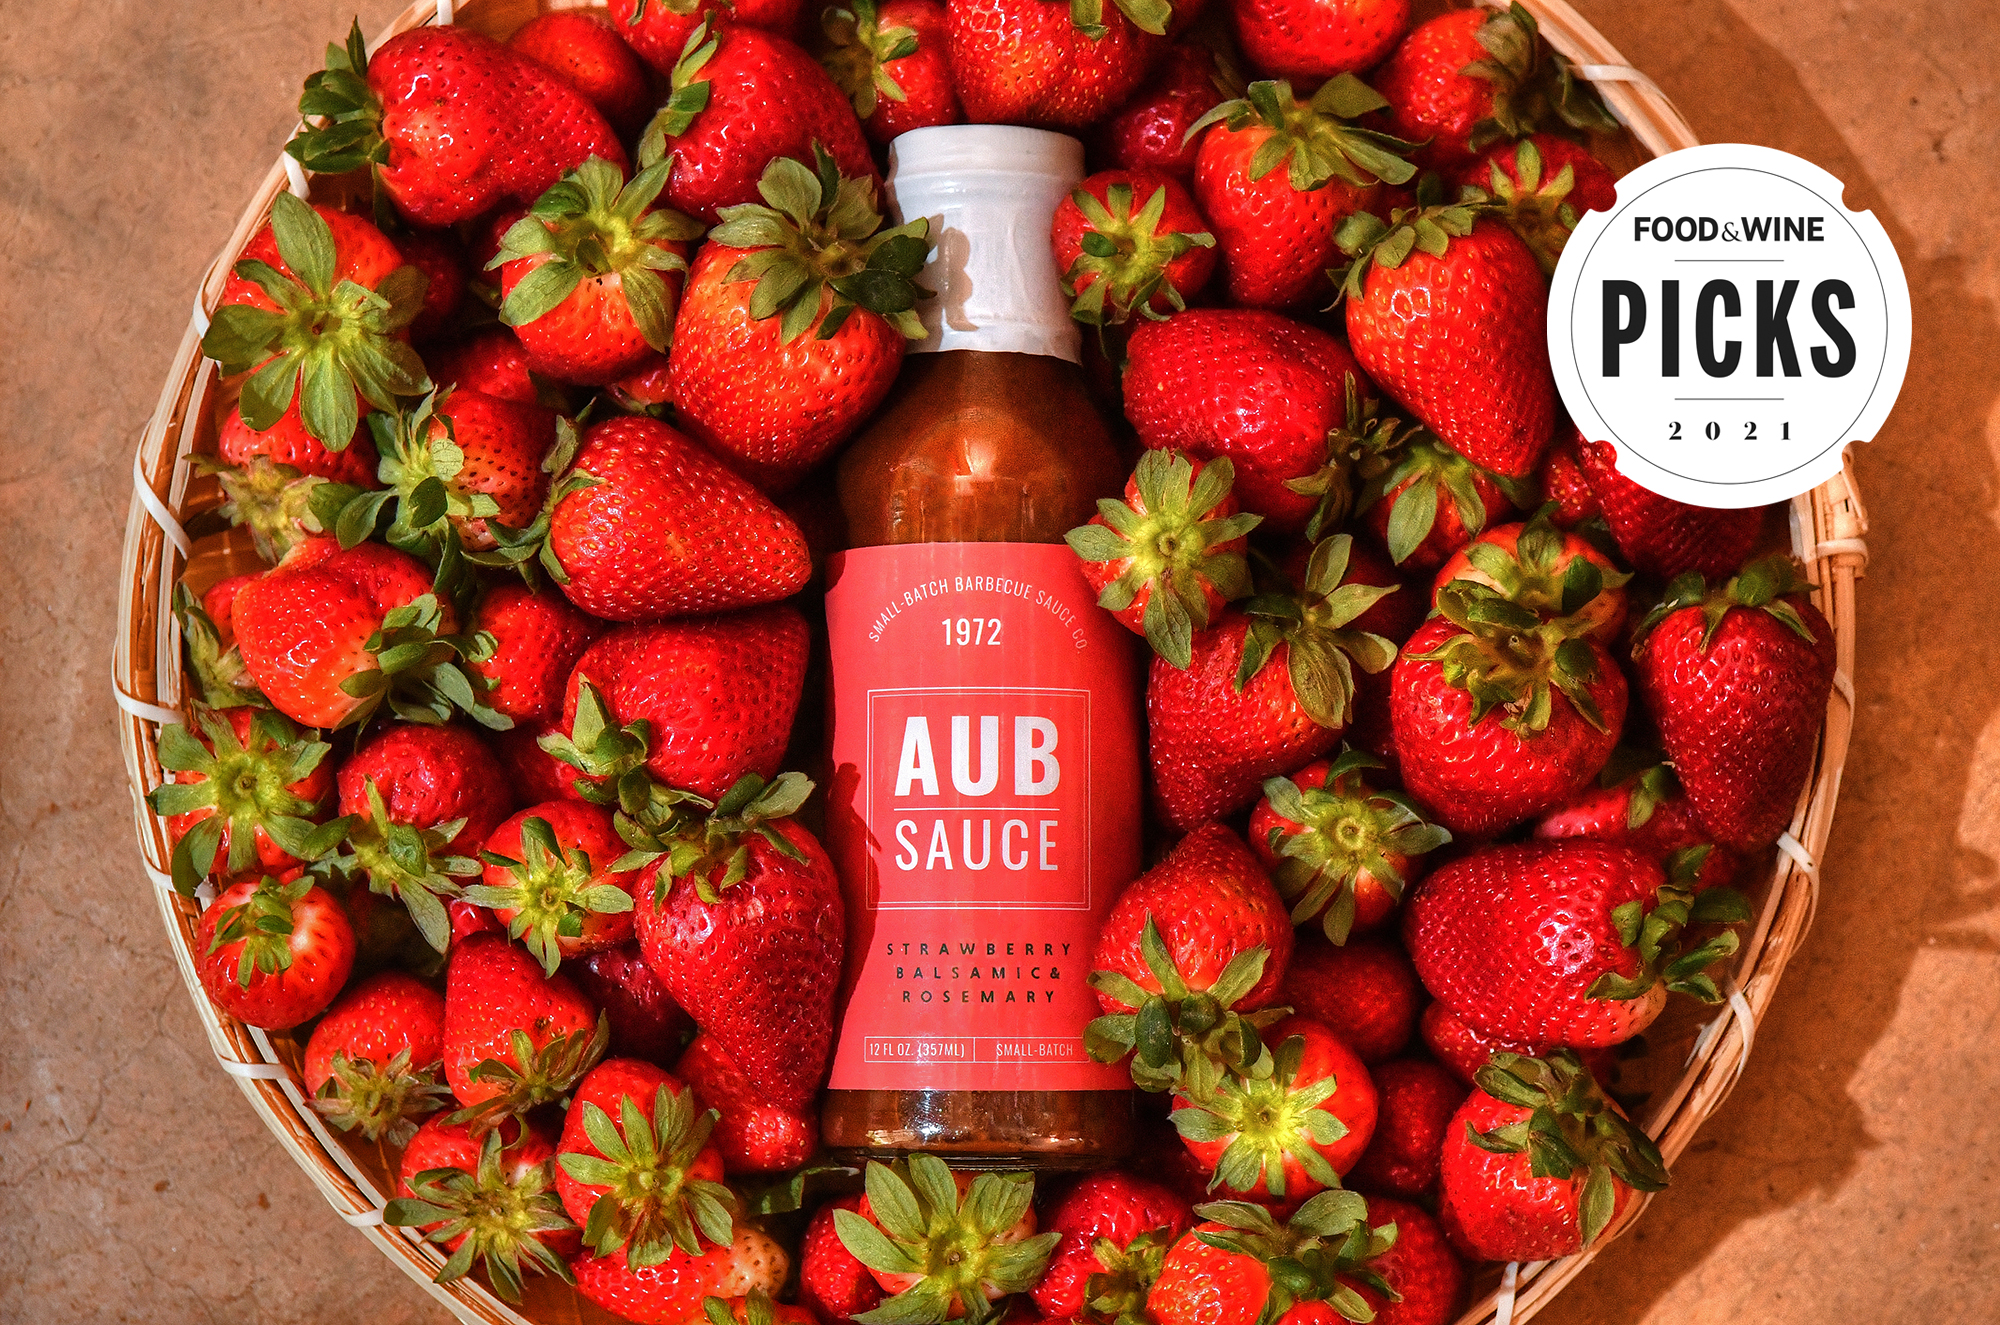 Aub Sauce in basket of strawberries